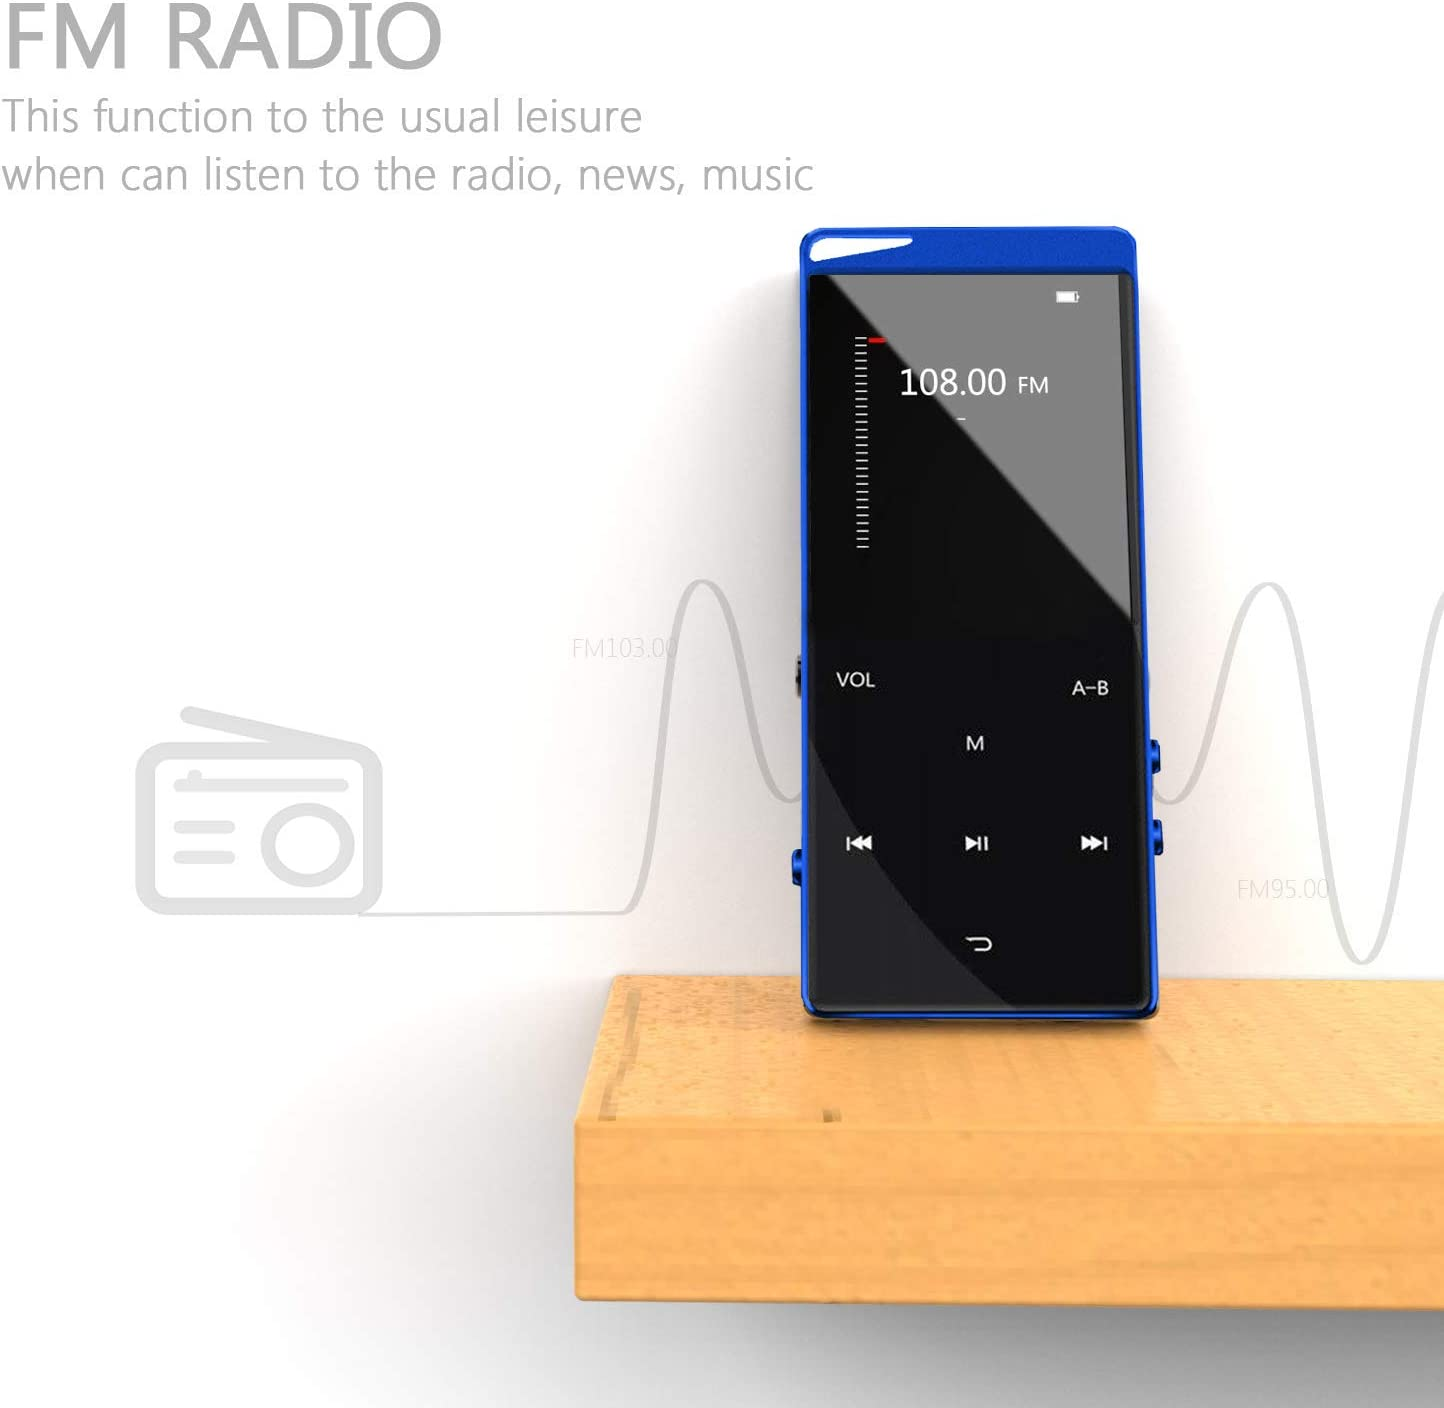 Support Up to 128 GB with HiFi Headphone Frehovy 16G MP3 Player with Bluetooth 4.2 Portable Lossless Sound MP3 Music Player with FM Radio Voice Recorder Music Speaker